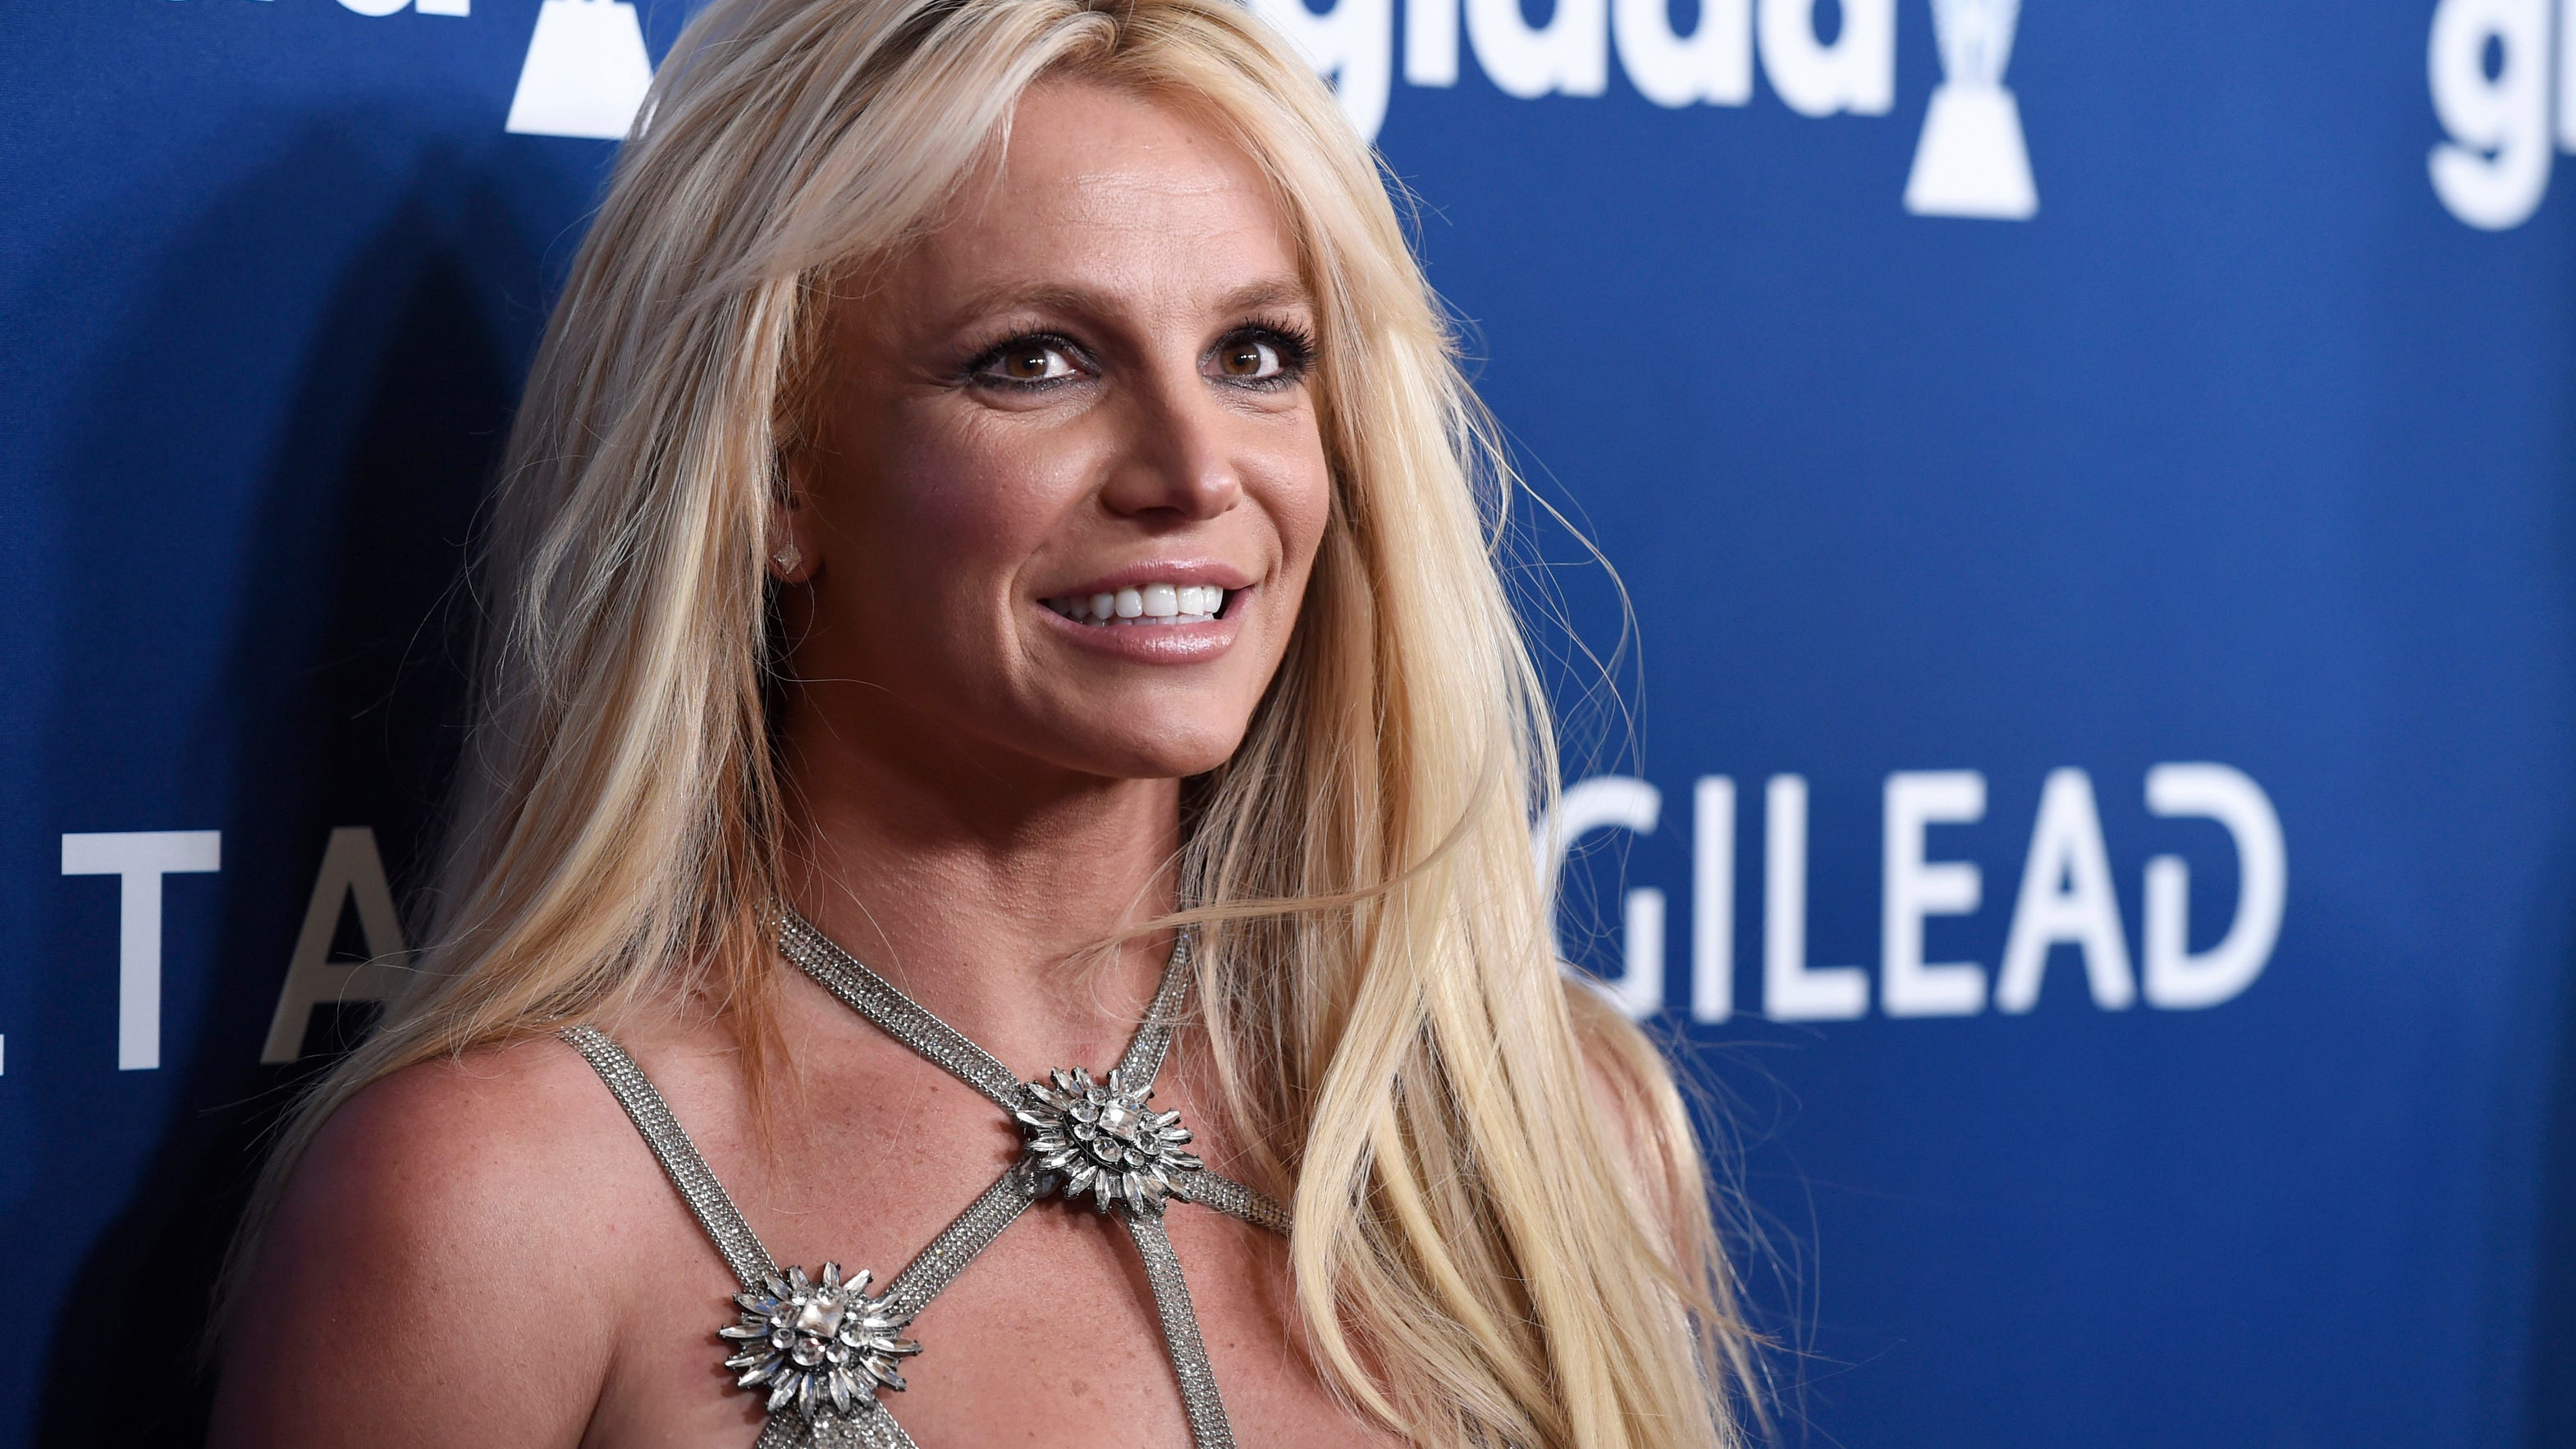 Britney Spears' medical team support efforts to remove dad Jamie from conservatorship